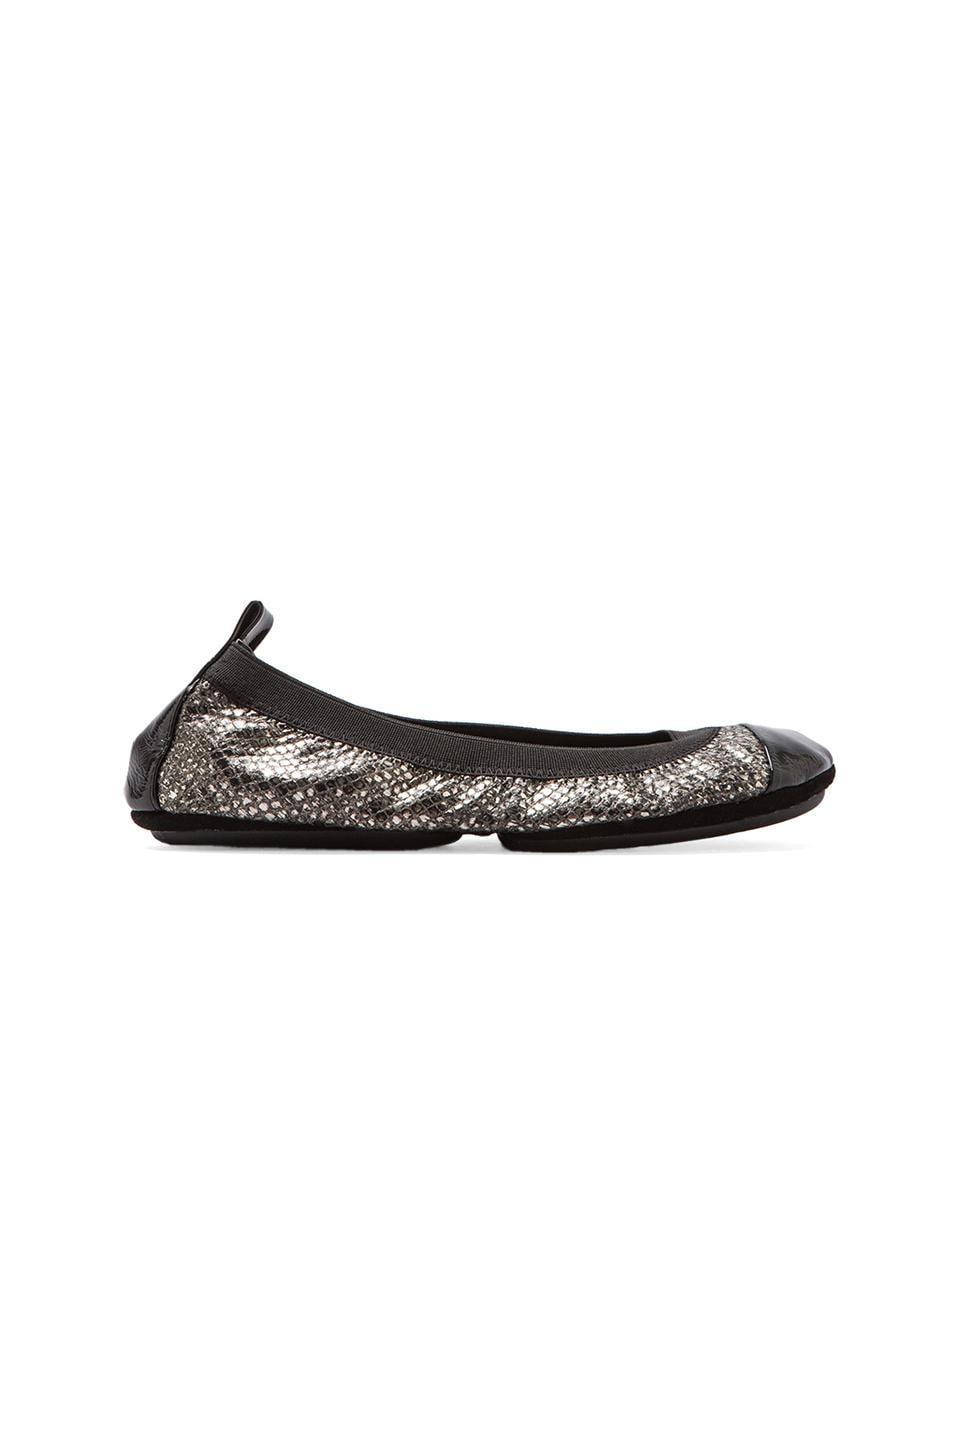 Yosi Samra Two Tone Patent Cap Toe Ballet Flat in Antique Silver/Black